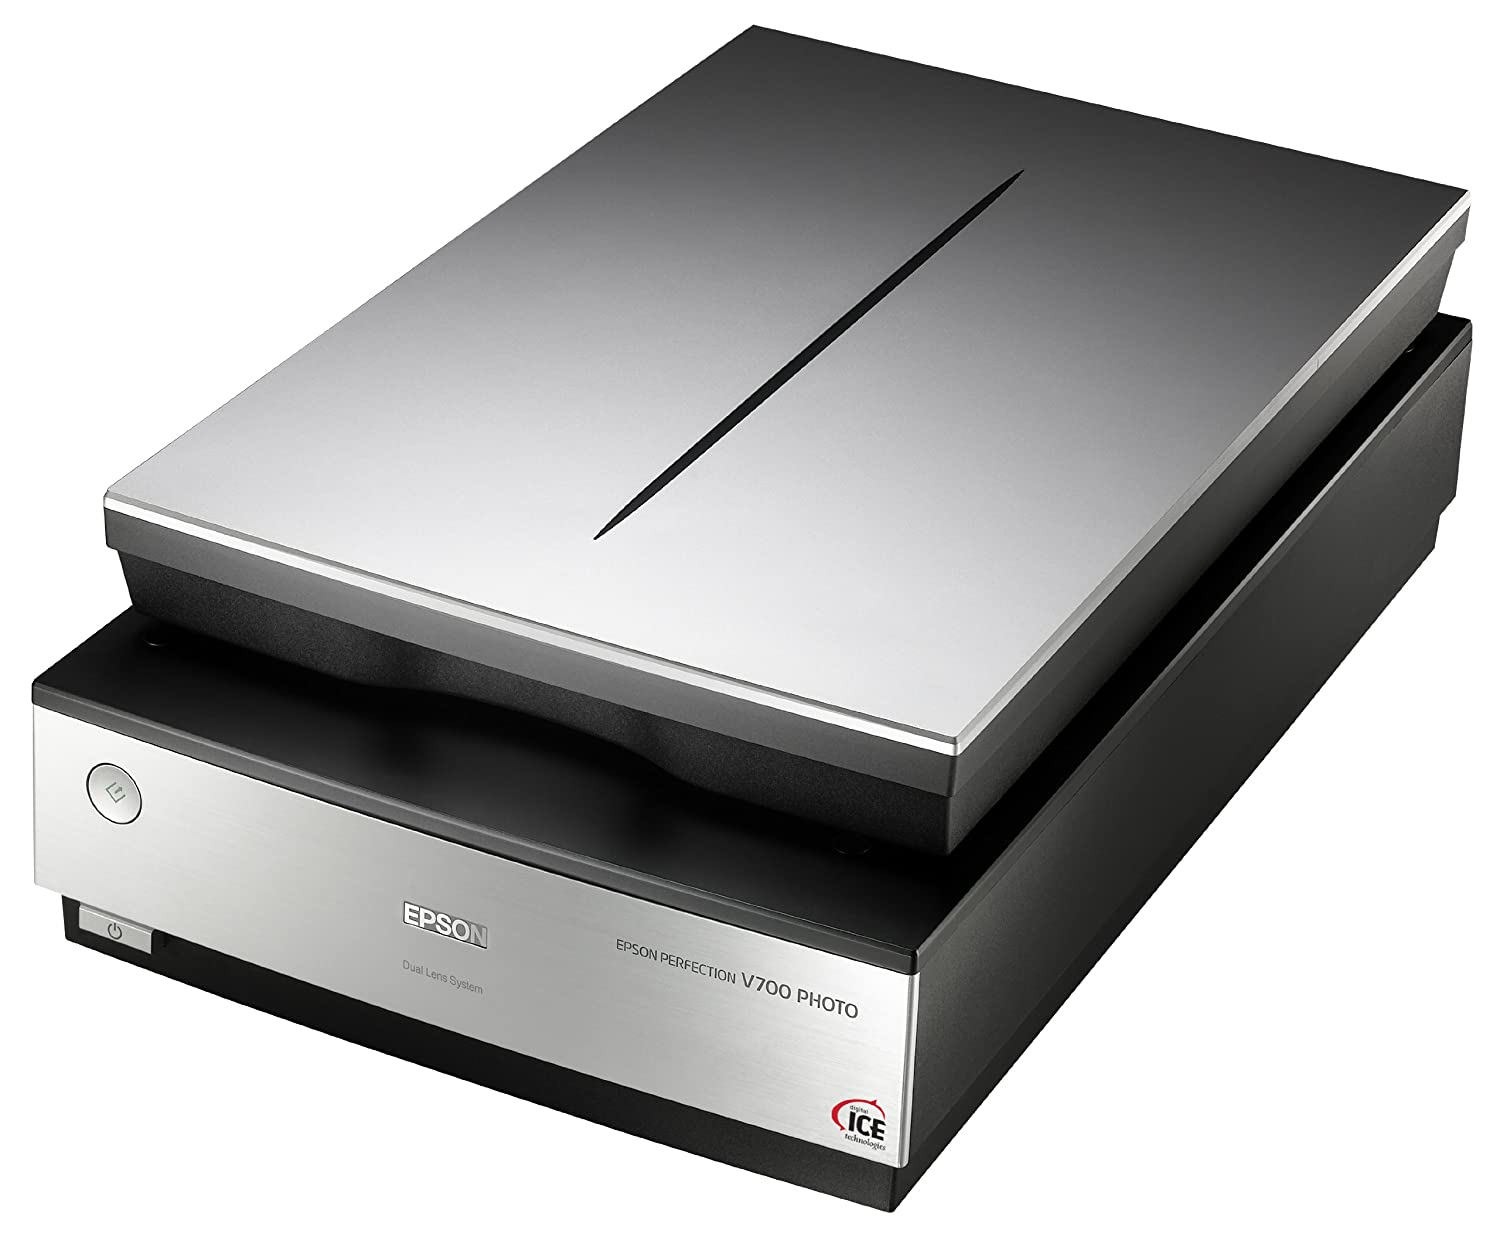 Epson Perfection 4990 Photo ICA Scanner Vista